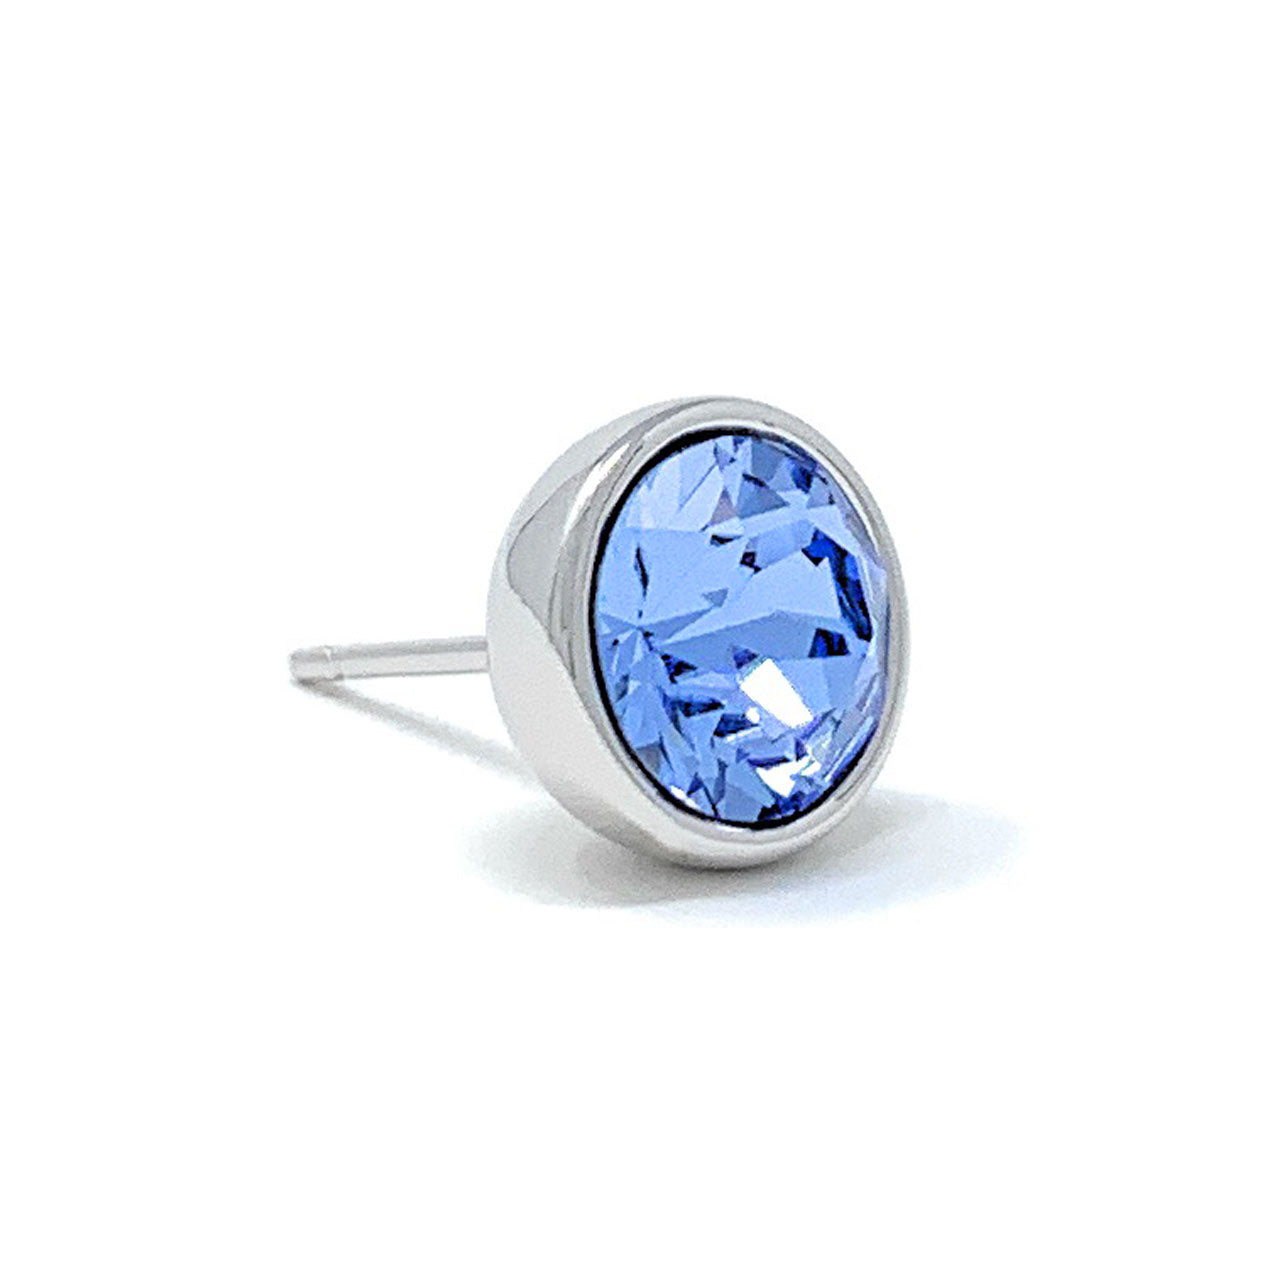 Harley Stud Earrings with Blue Light Sapphire Round Crystals from Swarovski Silver Toned Rhodium Plated - Ed Heart